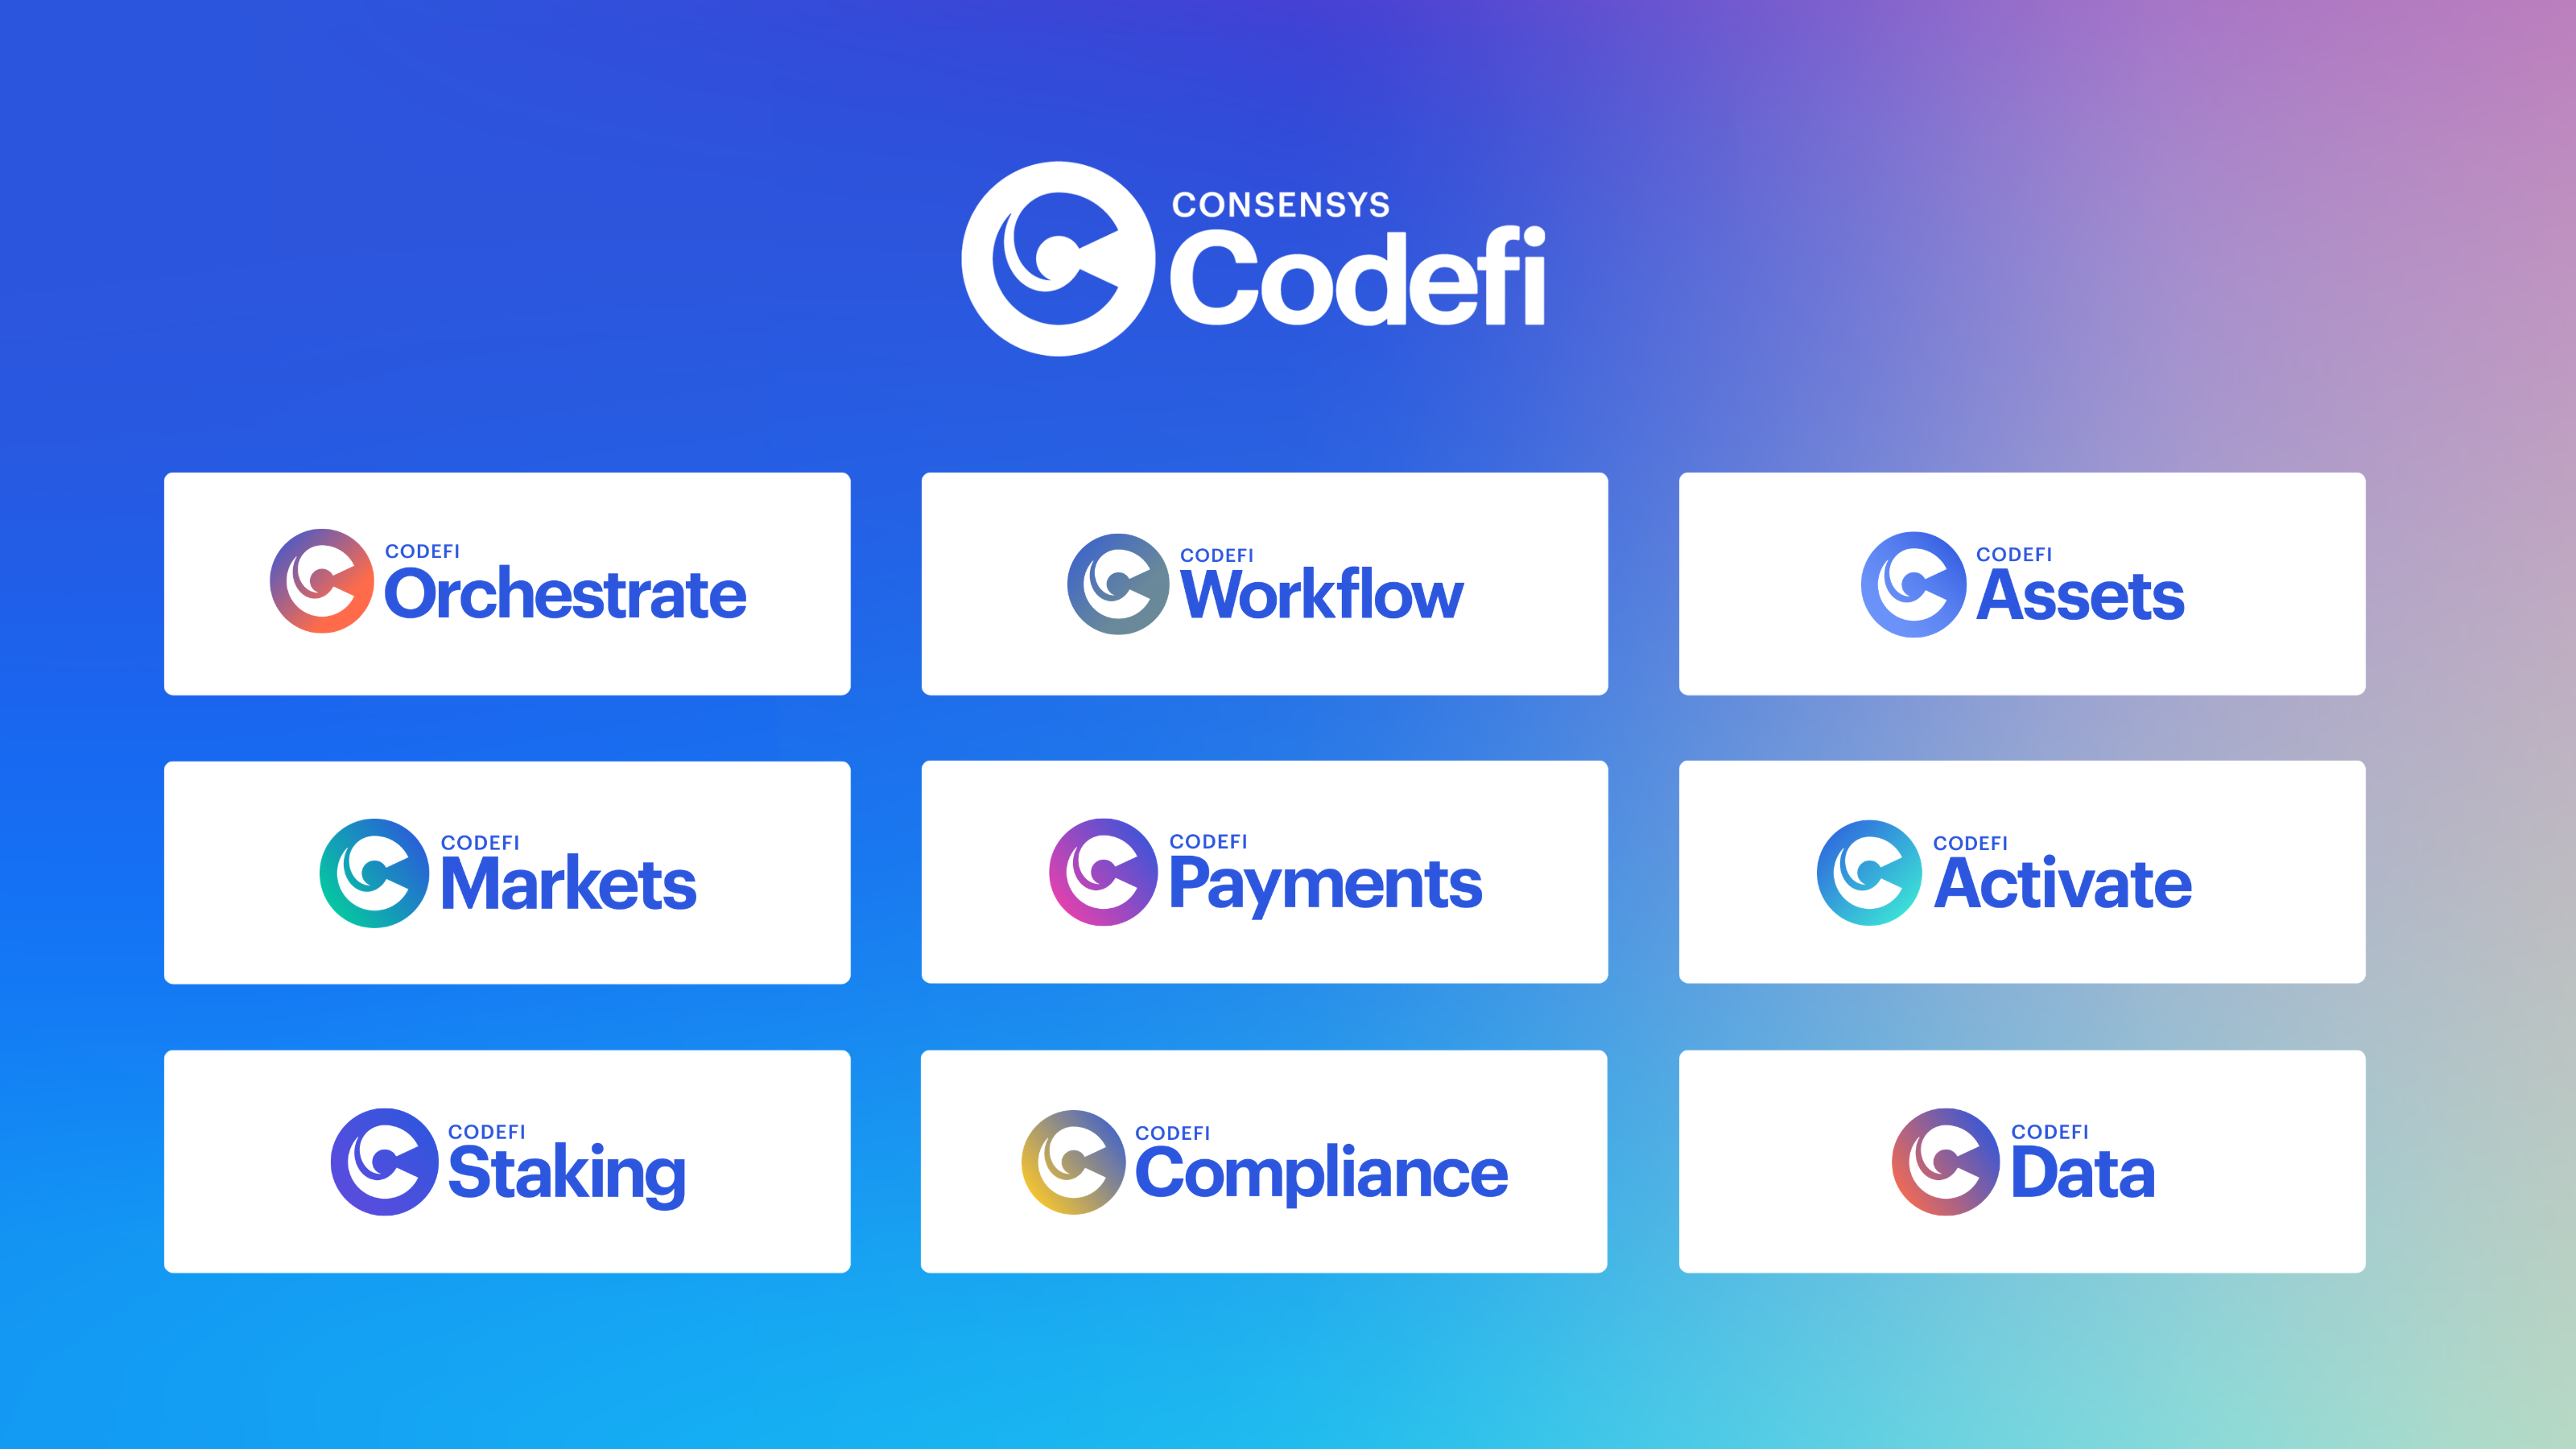 What is the Codefi Blockchain Application Suite?   ConsenSys Codefi   ConsenSys